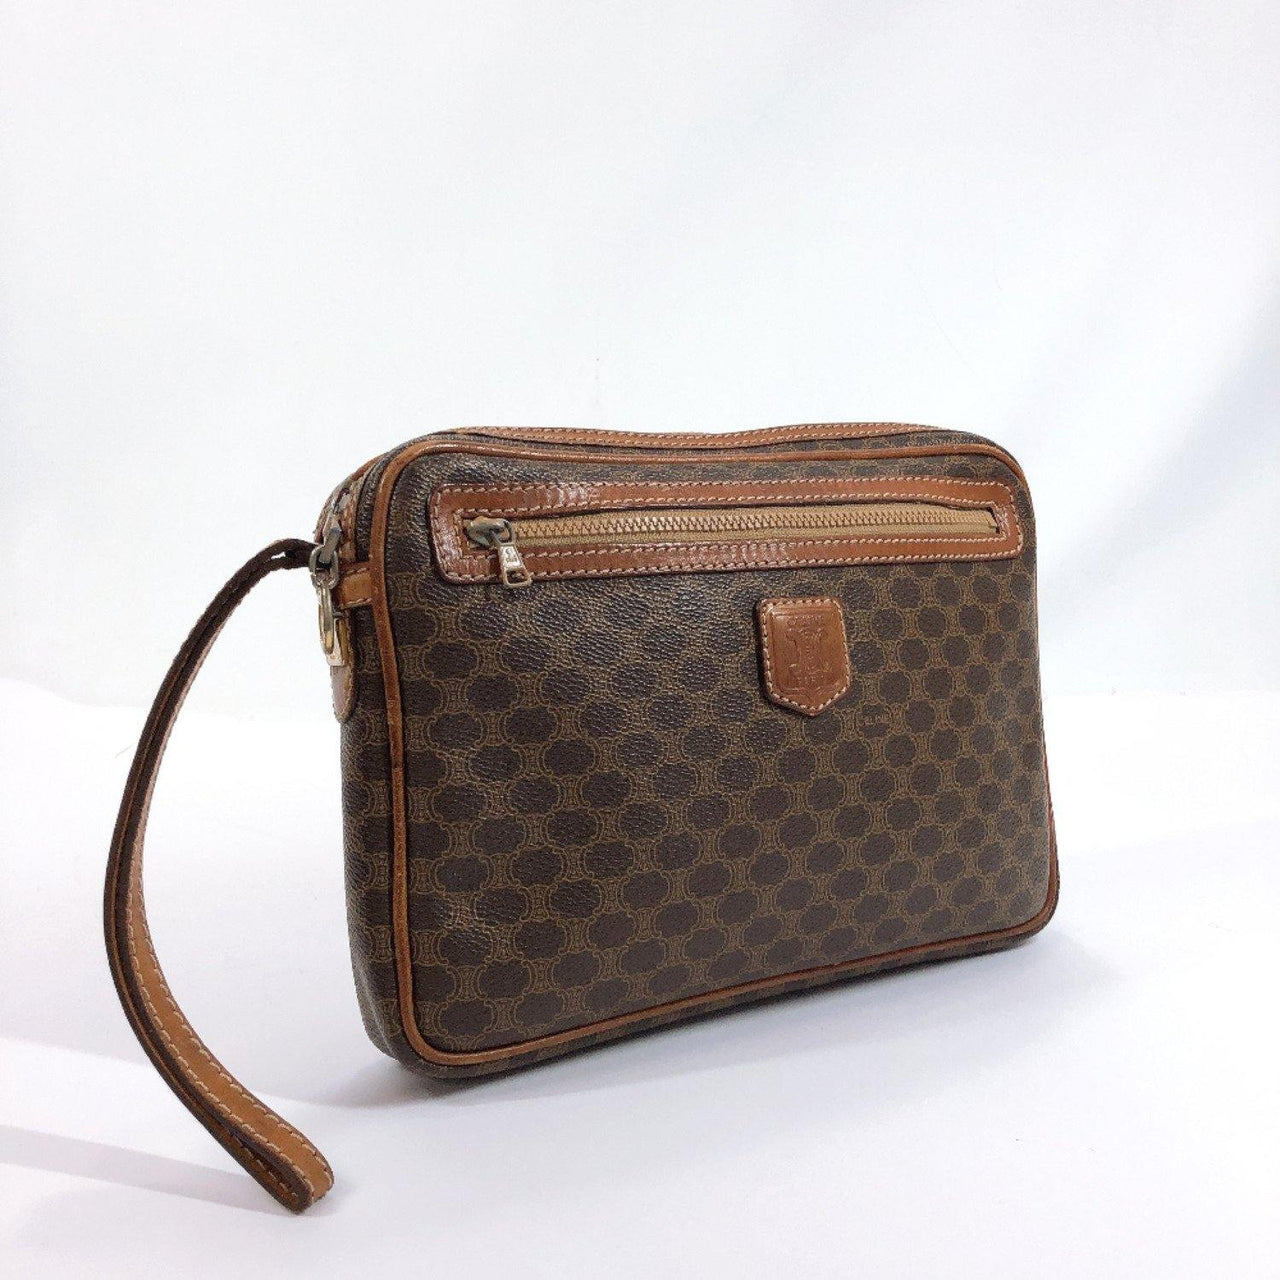 CELINE Clutch bag M07 Macadam pattern vintage PVC/Leather Brown unisex Used - JP-BRANDS.com